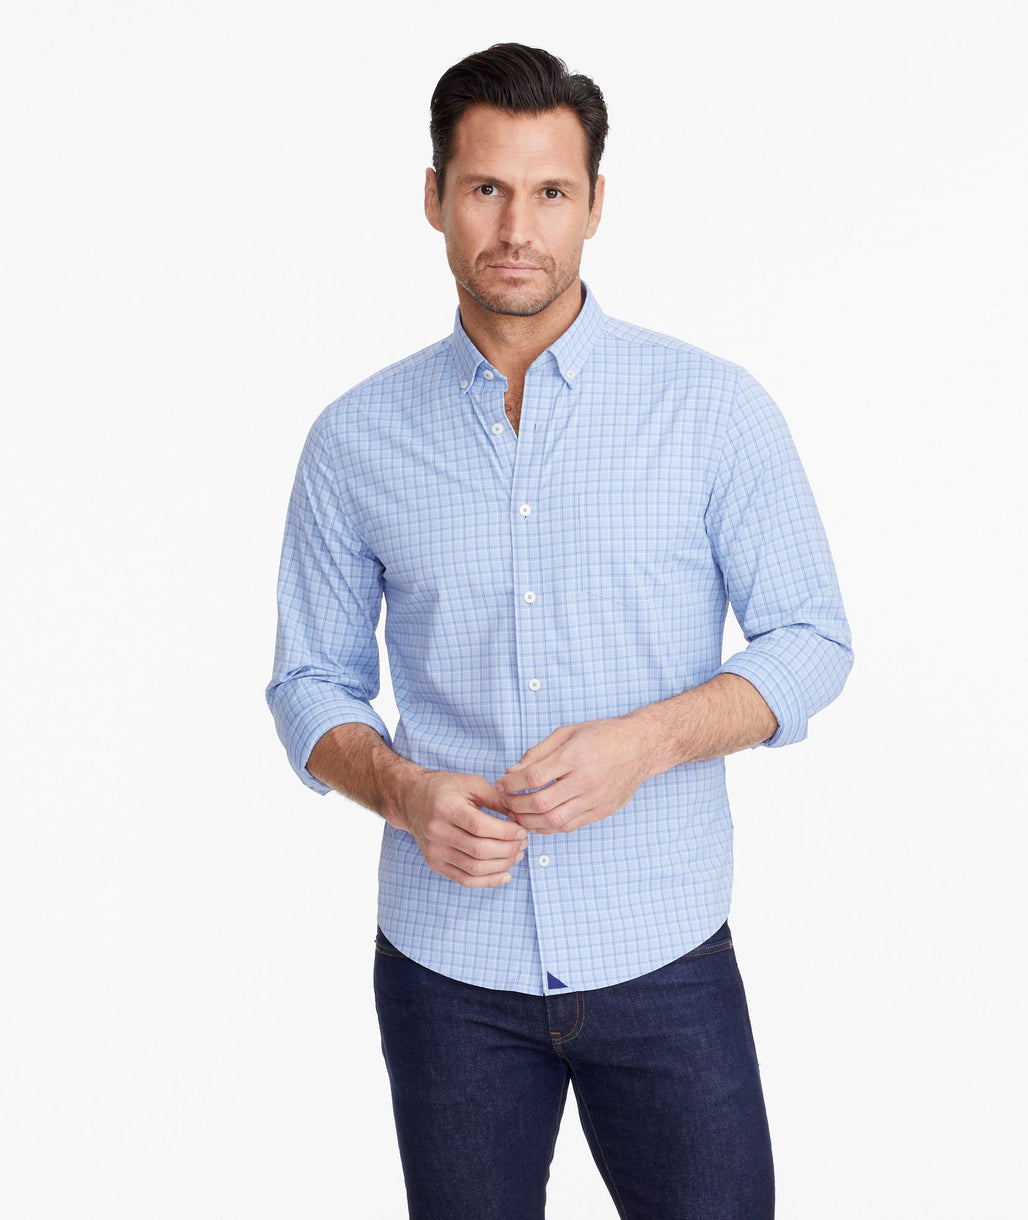 Model wearing a Light Blue Wrinkle-Free Performance+ Parrino Shirt